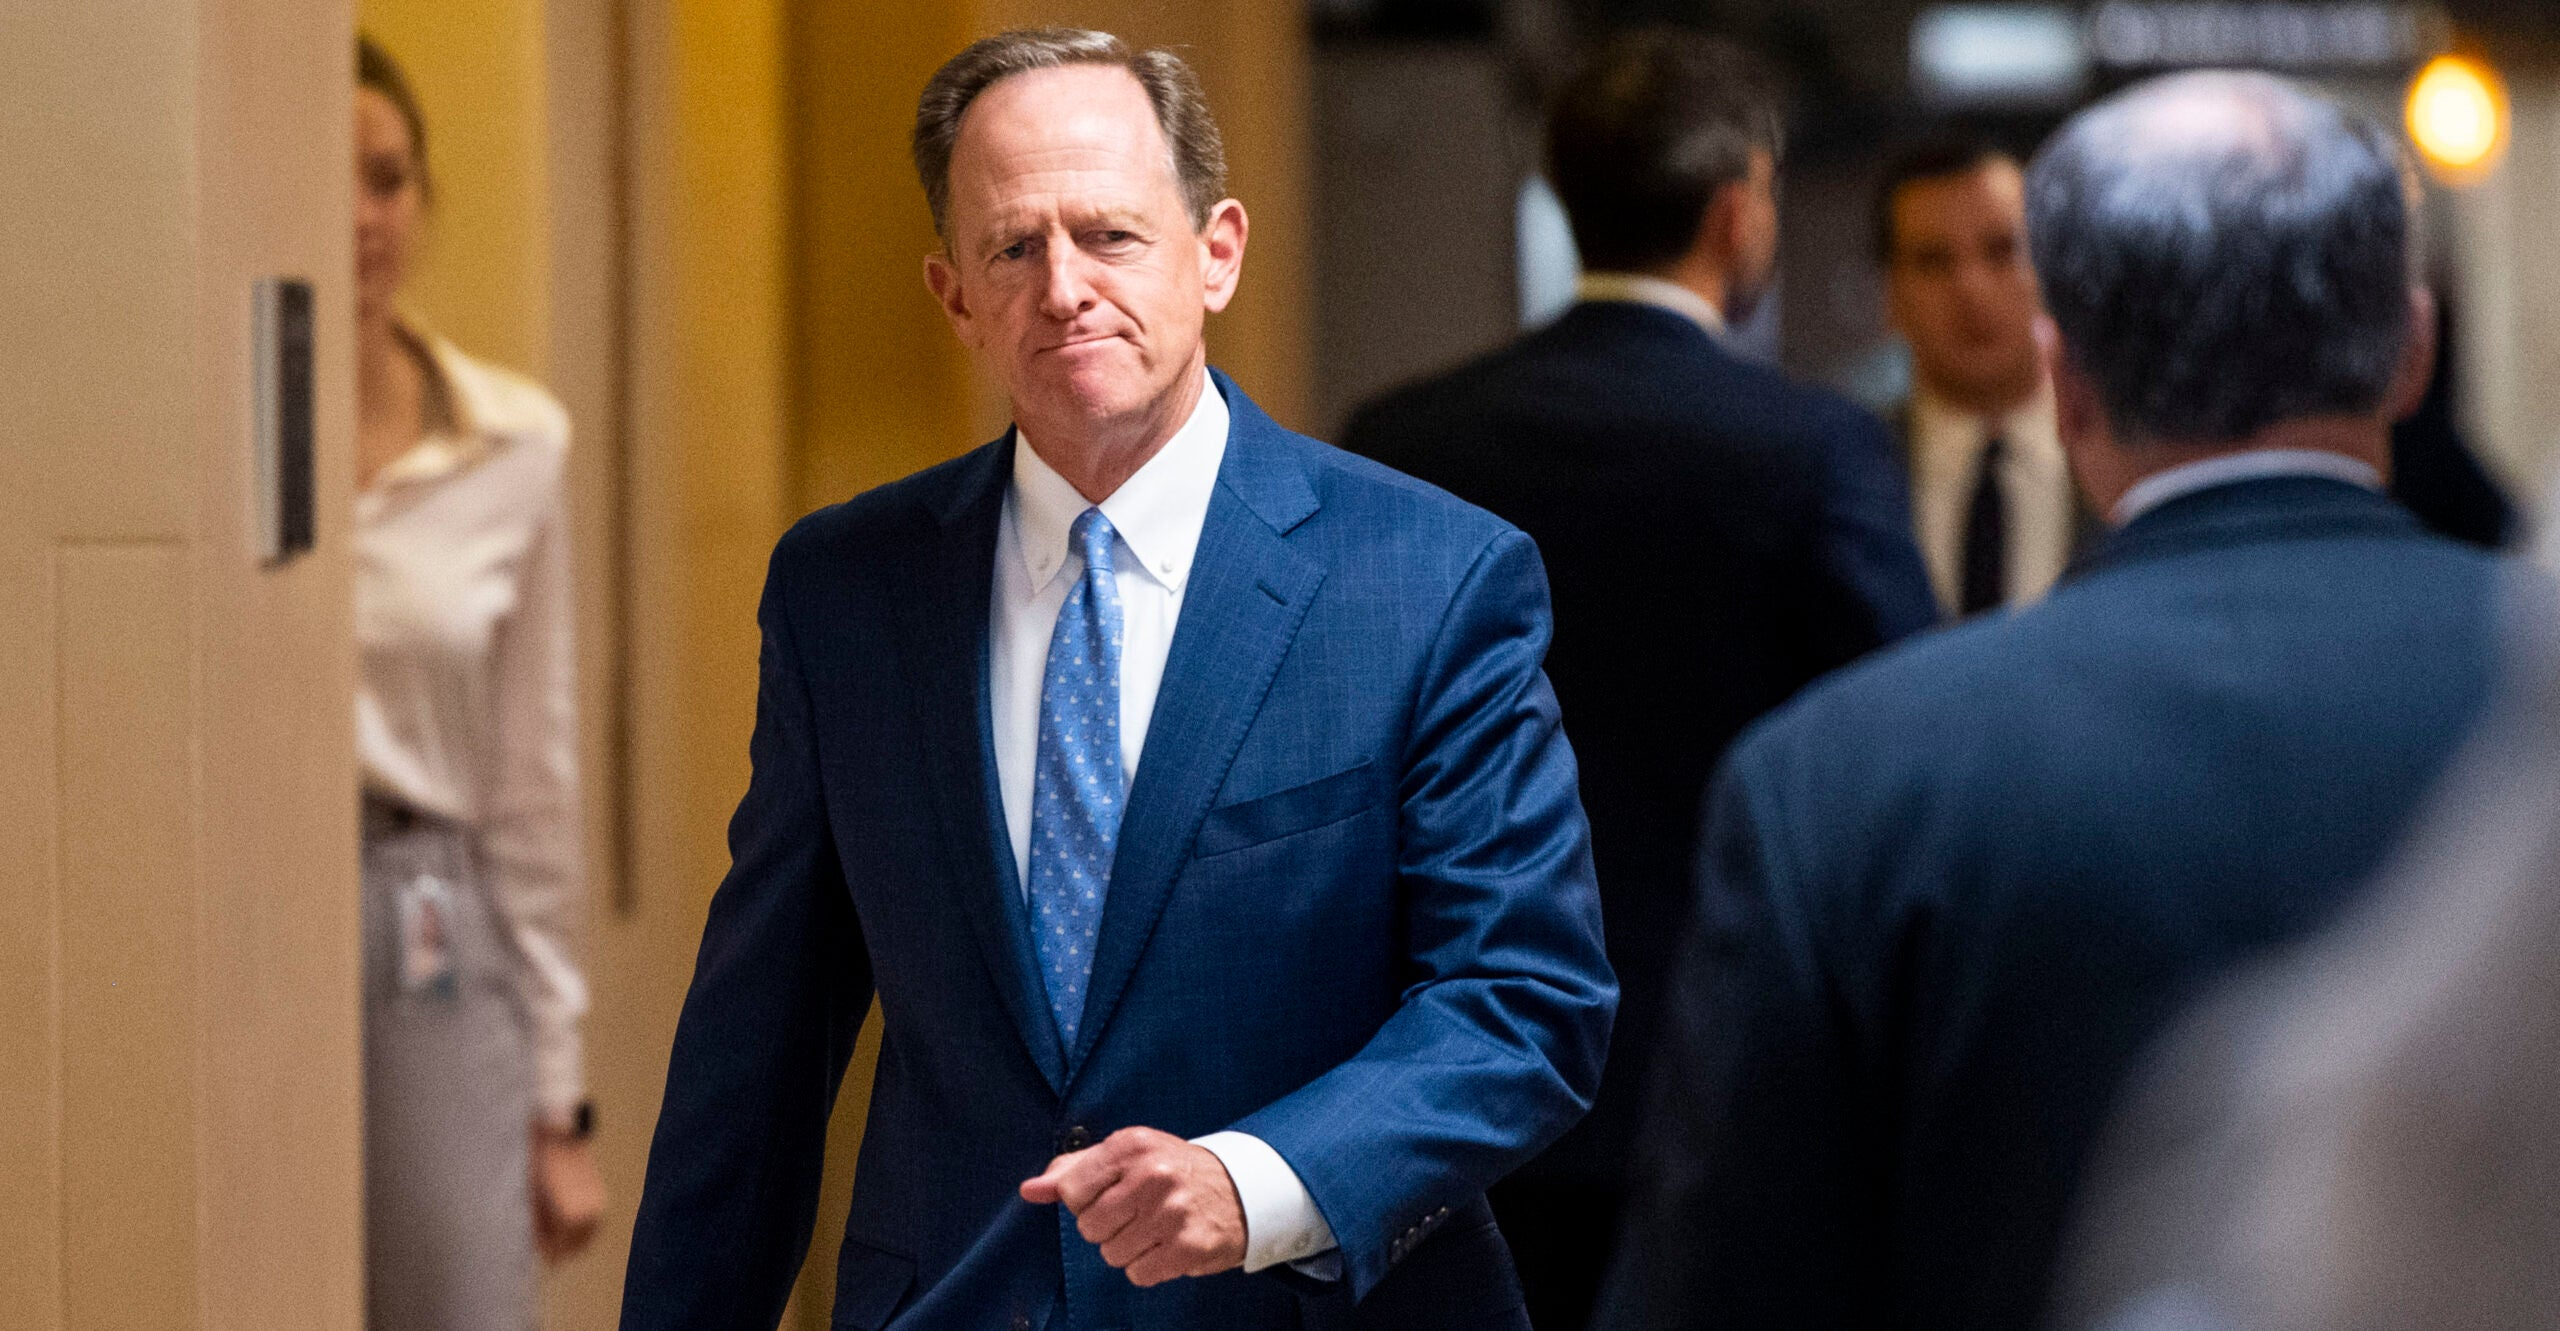 Sen. Toomey: Federal Reserve �Stonewalling� Transparency Requests Over New Racism Focus As Fed Goes Woke, Toomey Demands Transparency